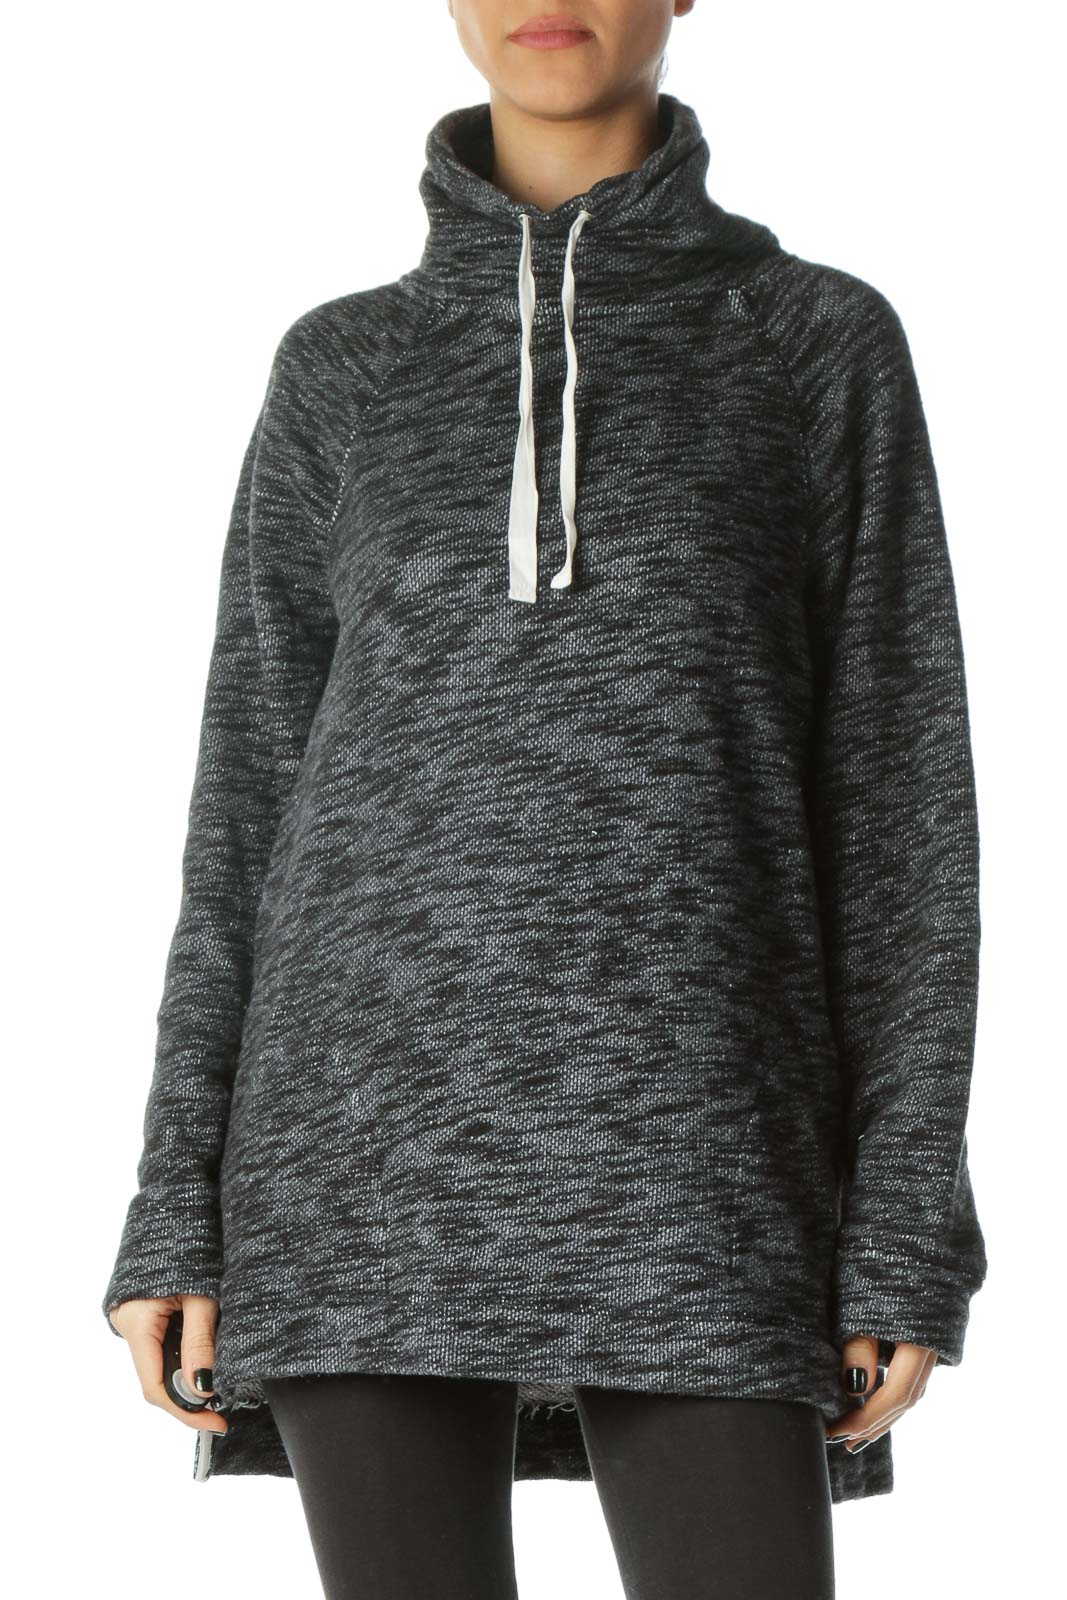 Black Gray White Knit Drawstring Pullover Sweater